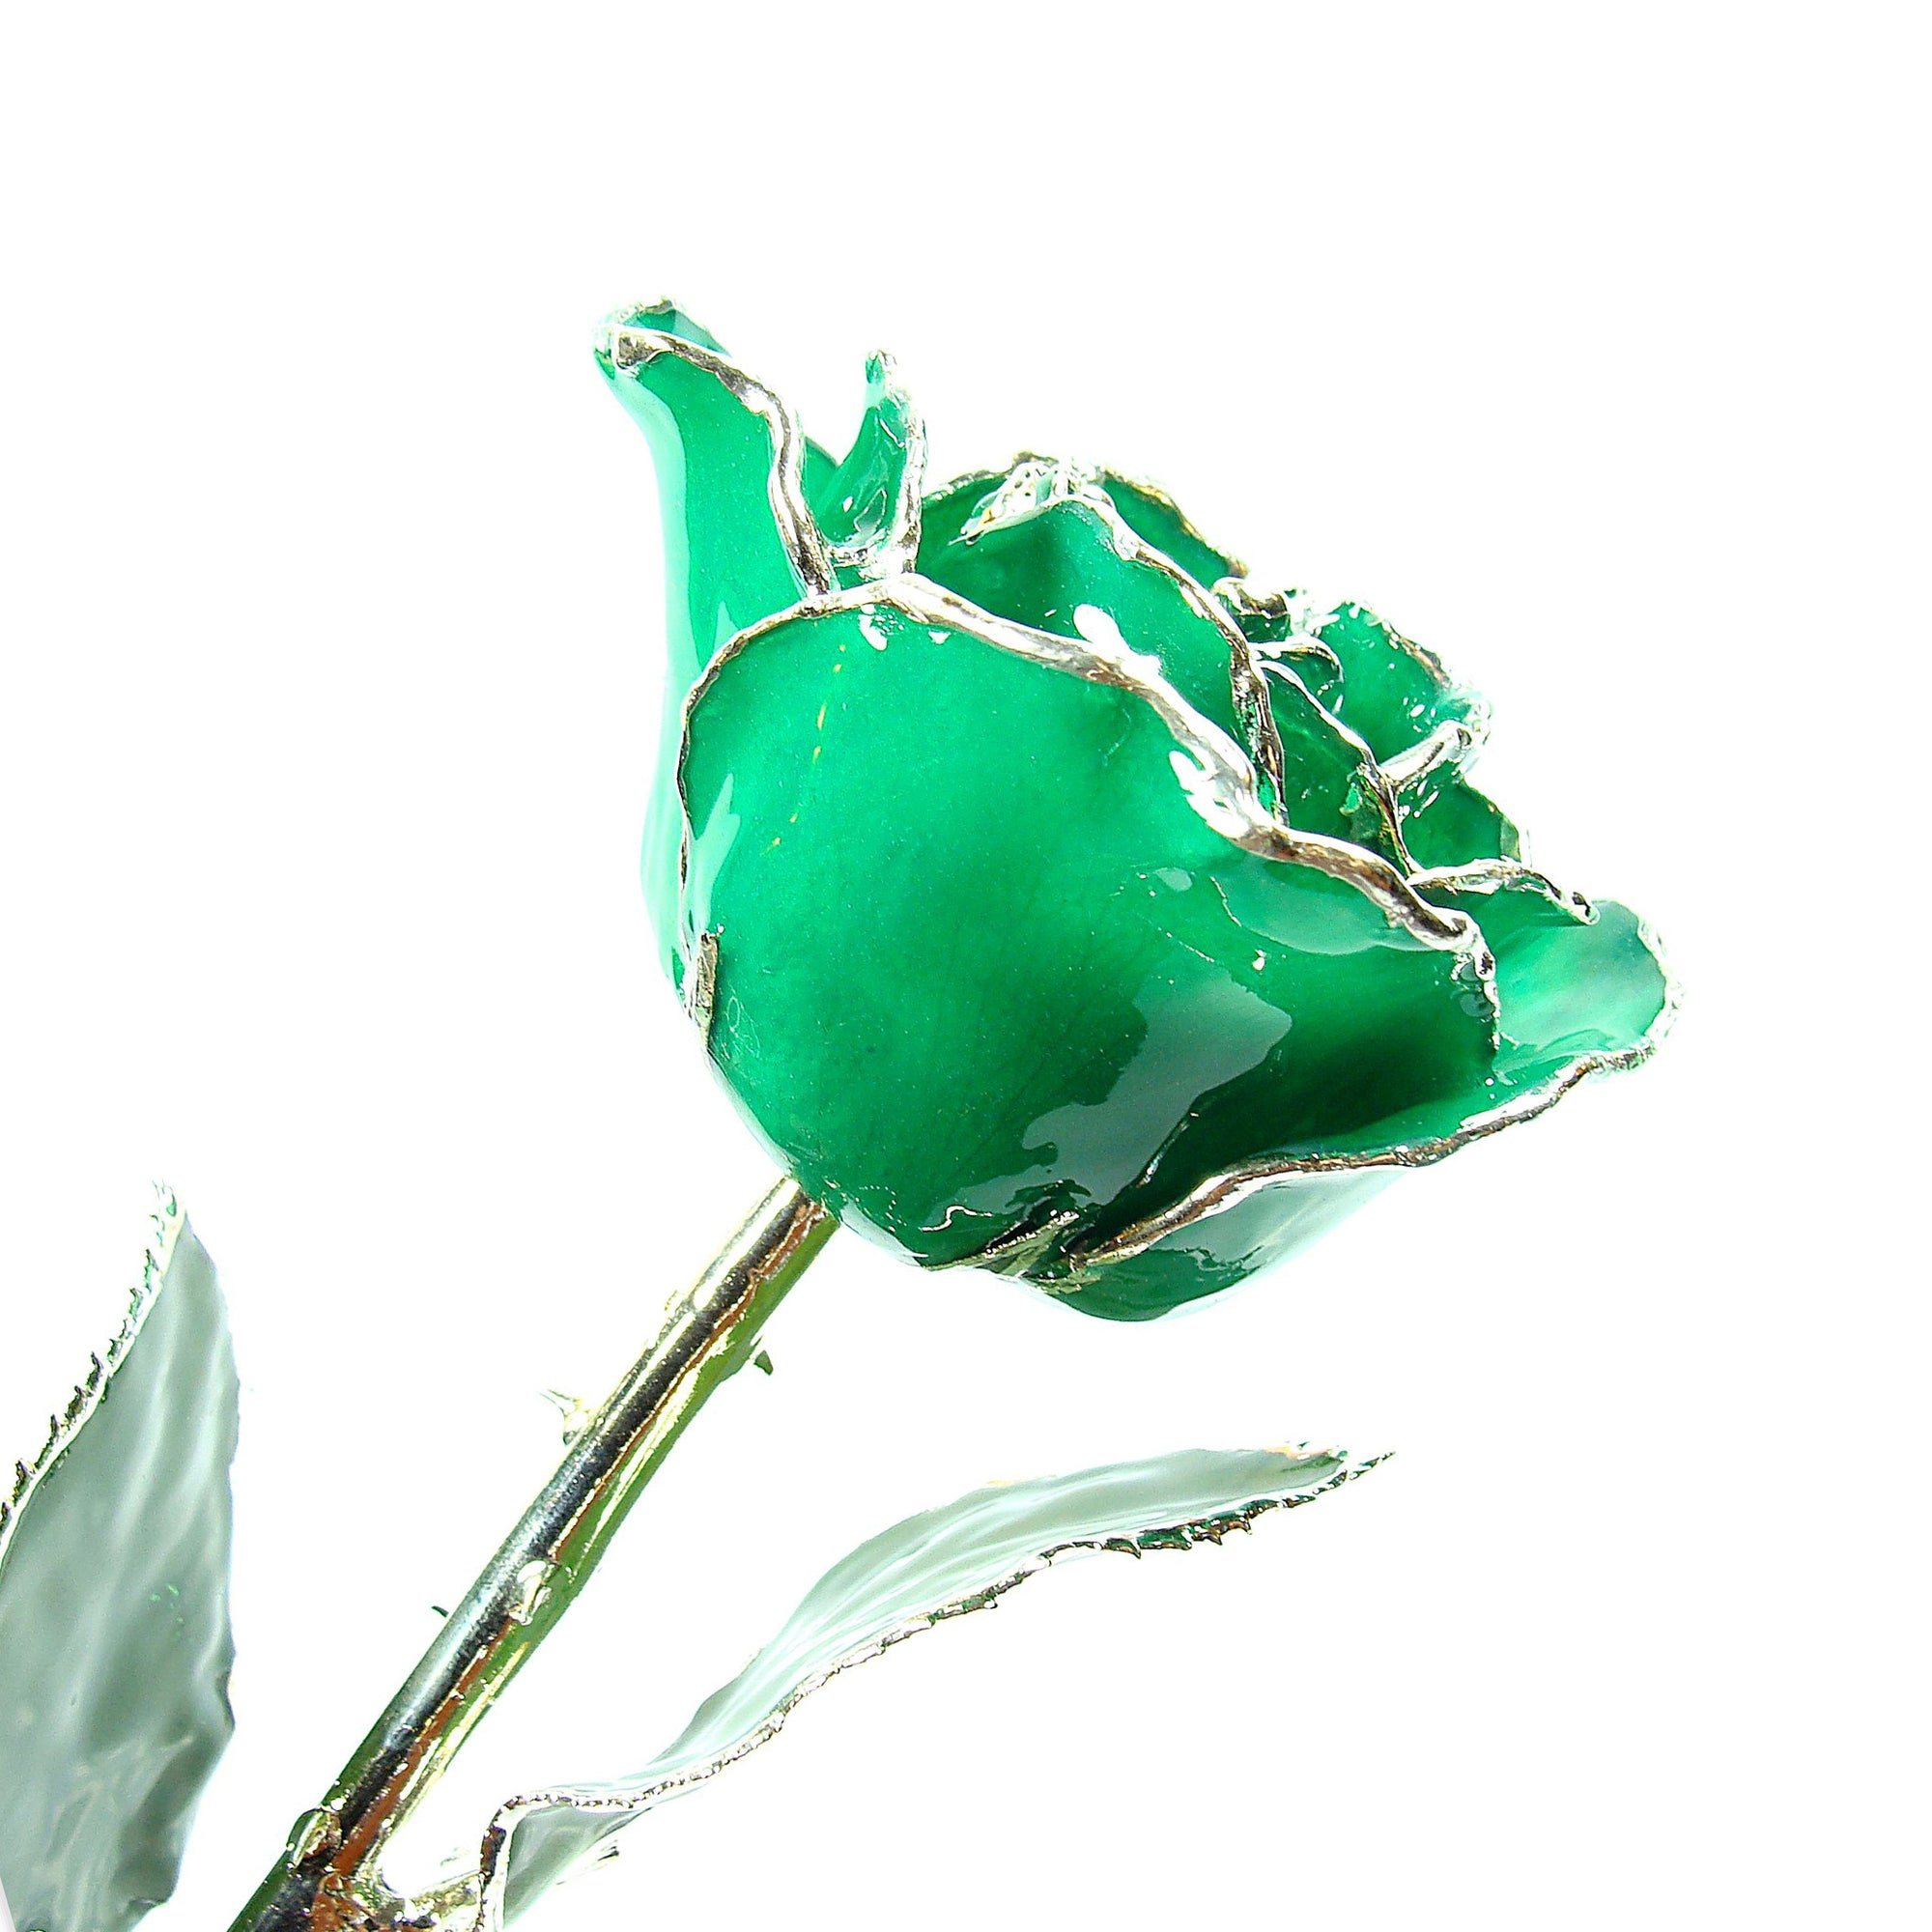 Silver Trimmed Forever Rose with Green Petals. View of Stem, Leaves, and Rose Petals and Showing Detail of Silver Trim